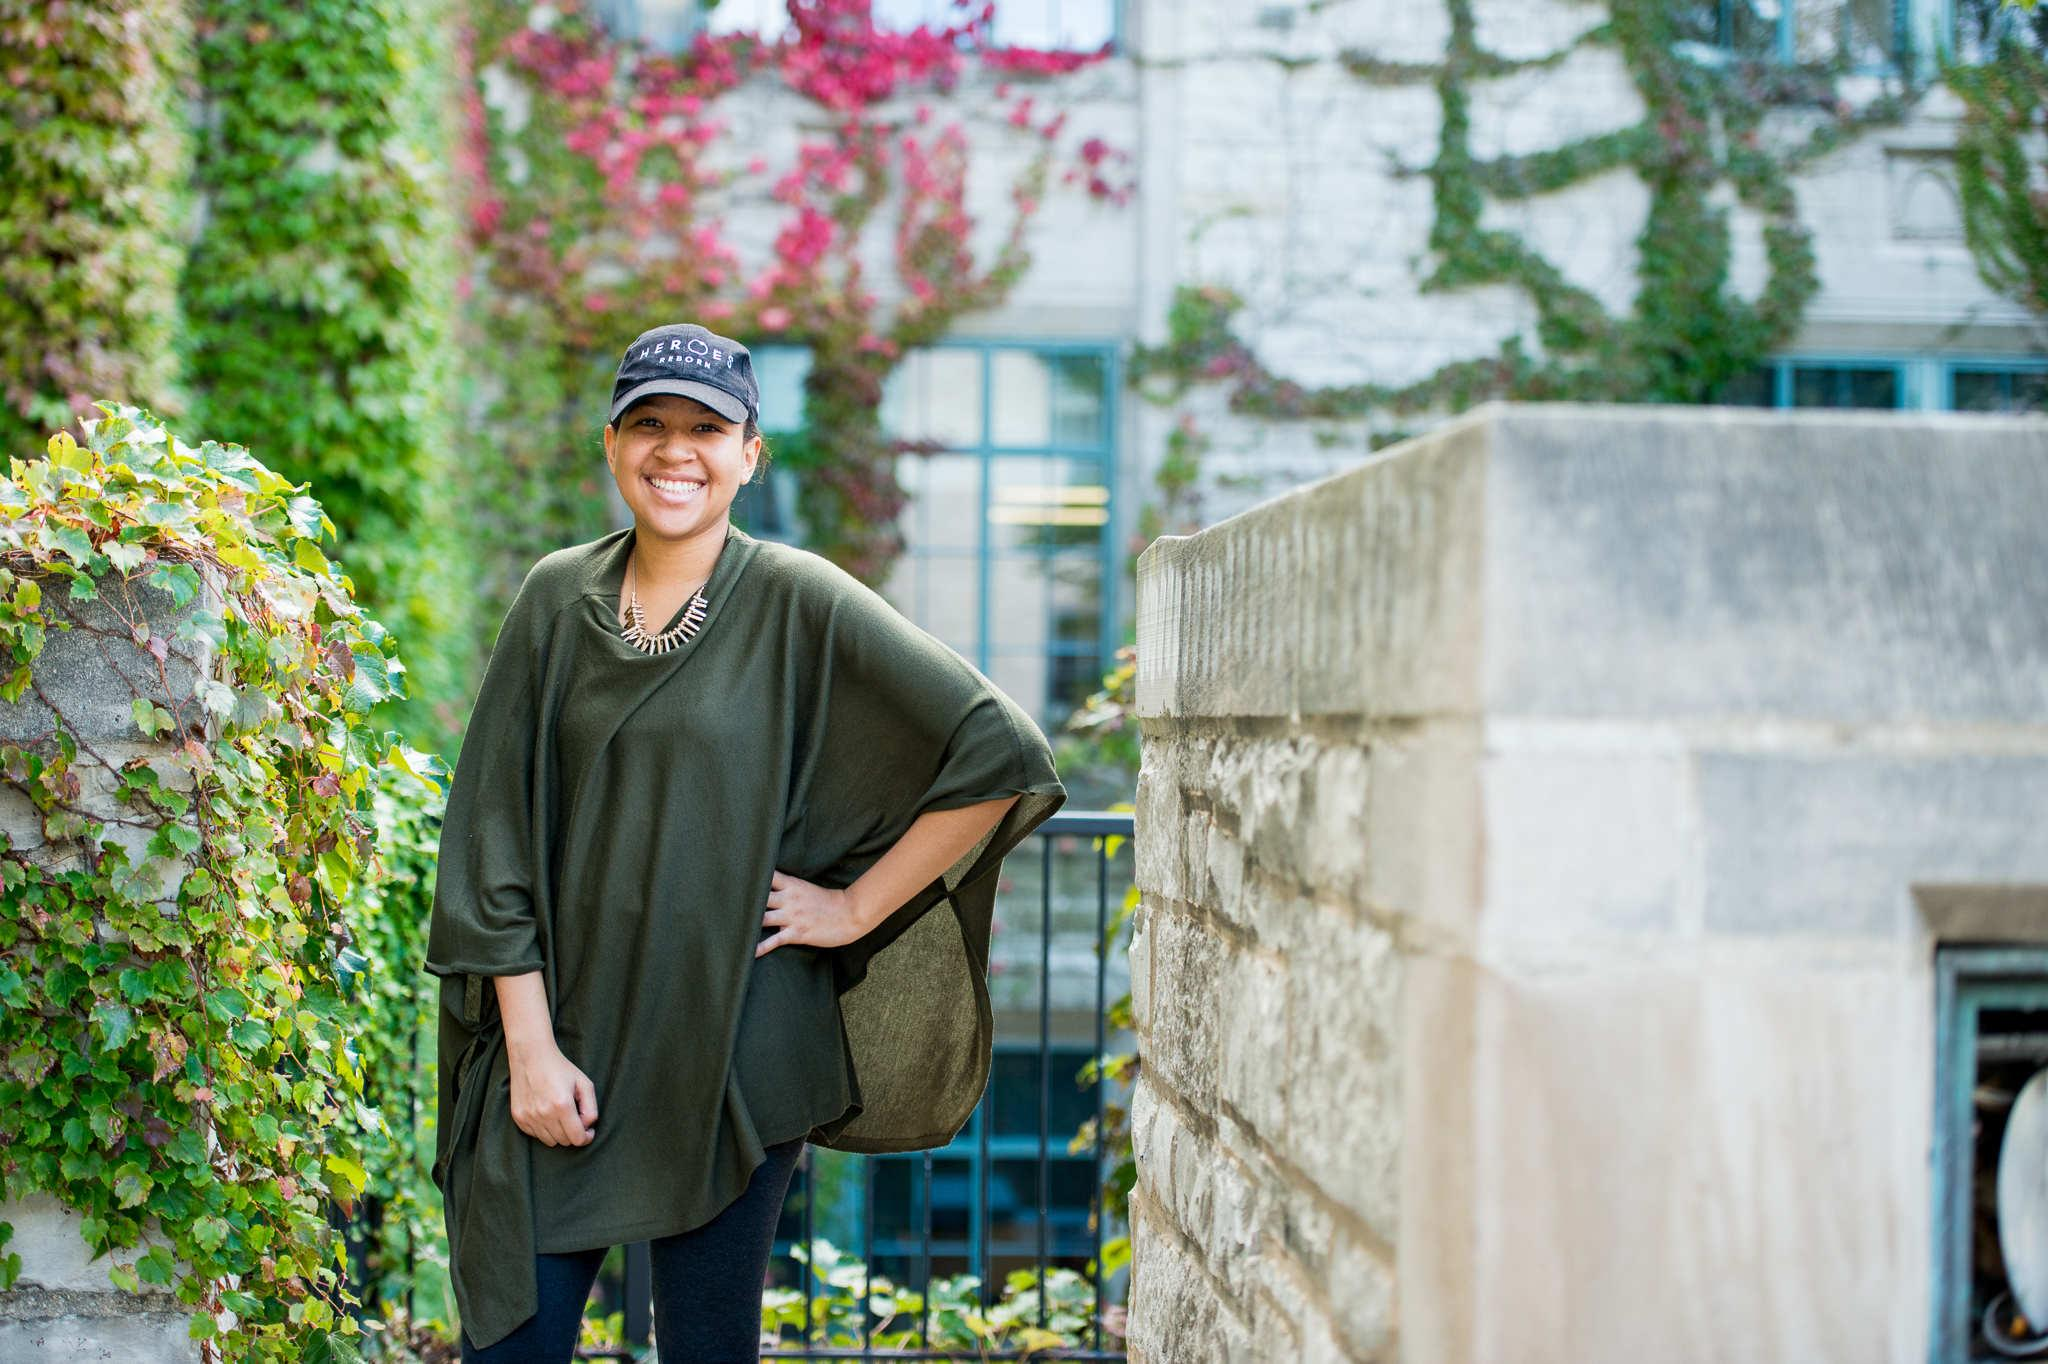 Kristen Cotton is a biomedical engineering major  in the McCormick School of Engineering and Applied Sciences. Though underrepresented, black STEM students at Northwestern said they find support through programs like EXCEL and the National Society of Black Engineers.